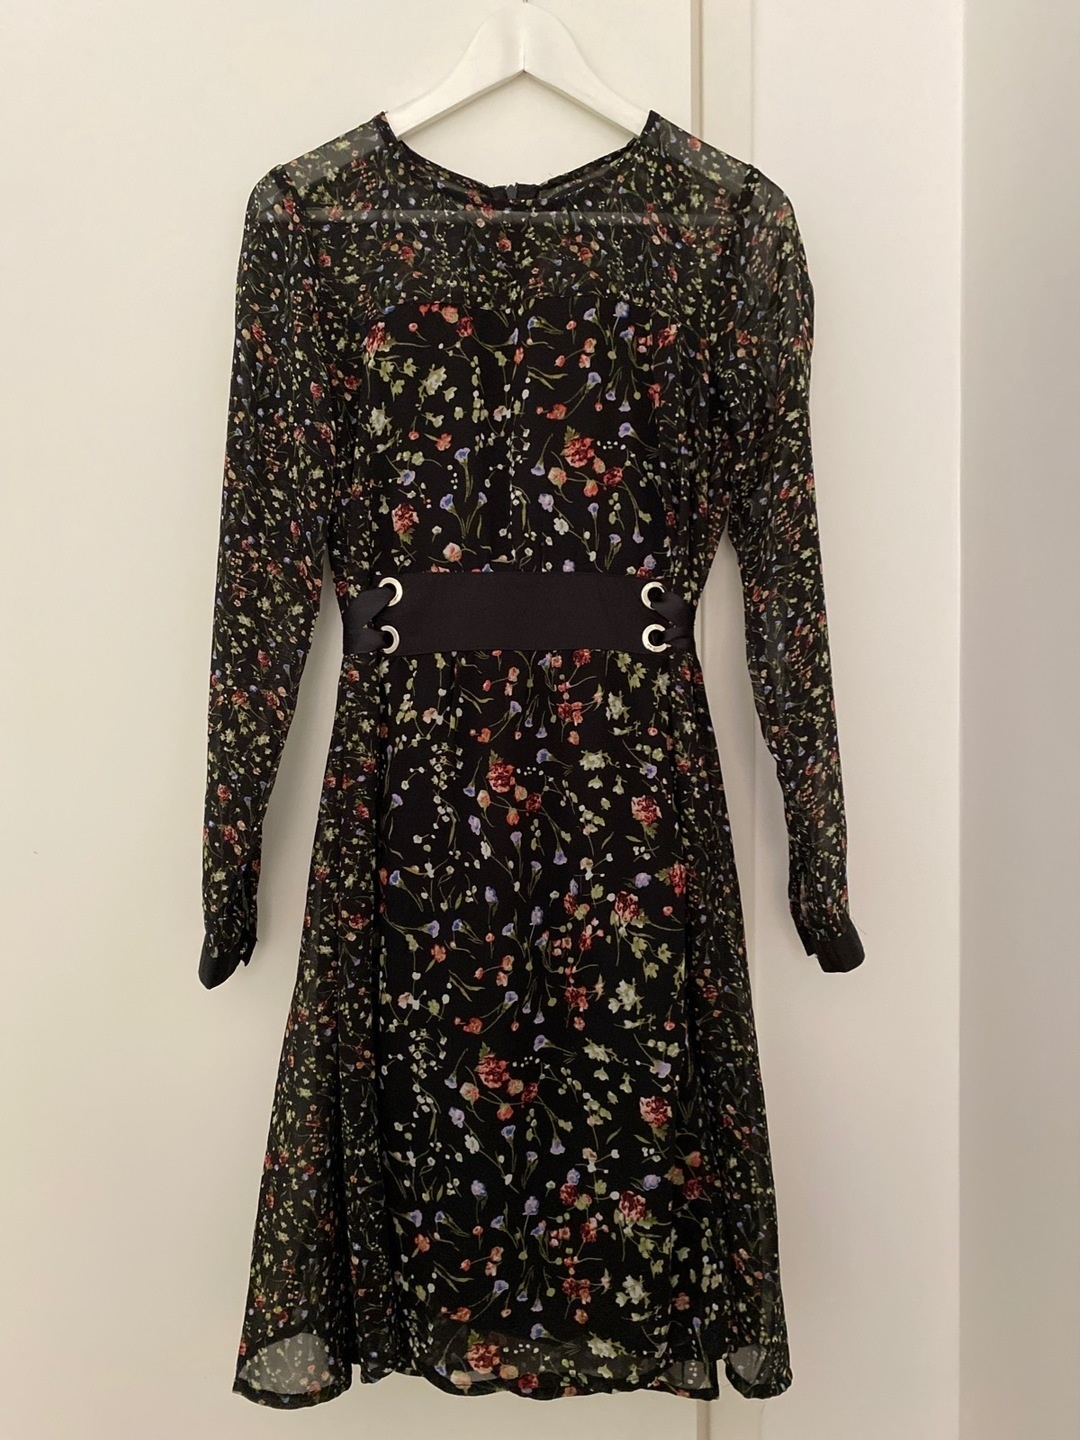 Women's dresses - RESERVED photo 1